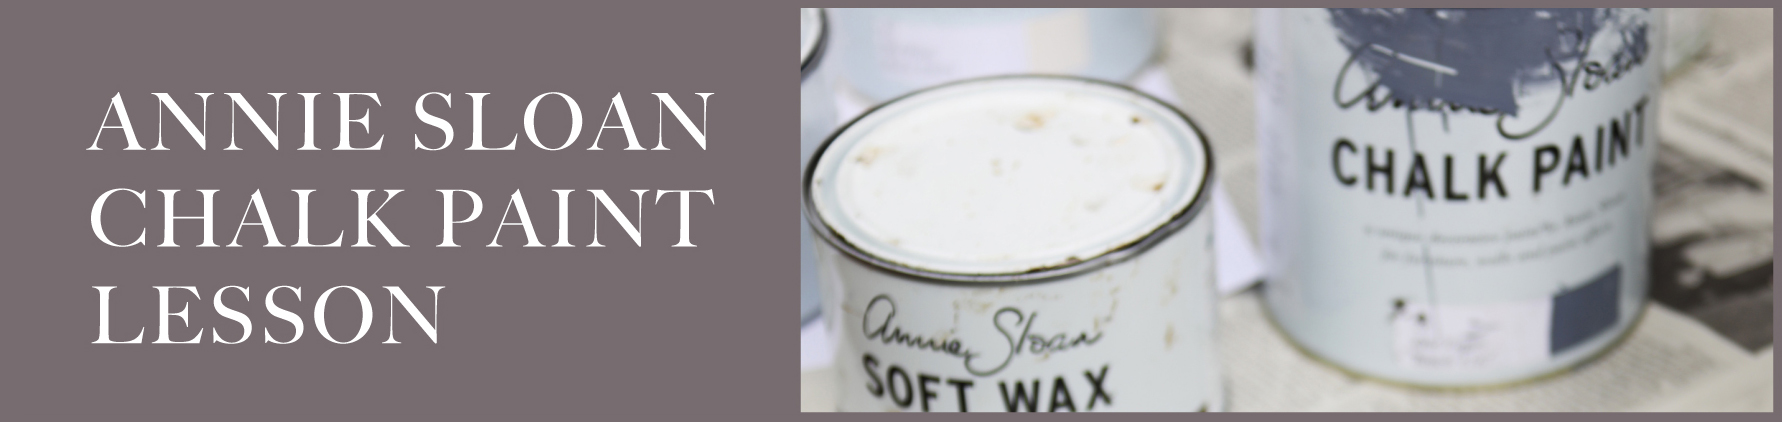 ANNIE SLOAN CHALK PAINT LESSON